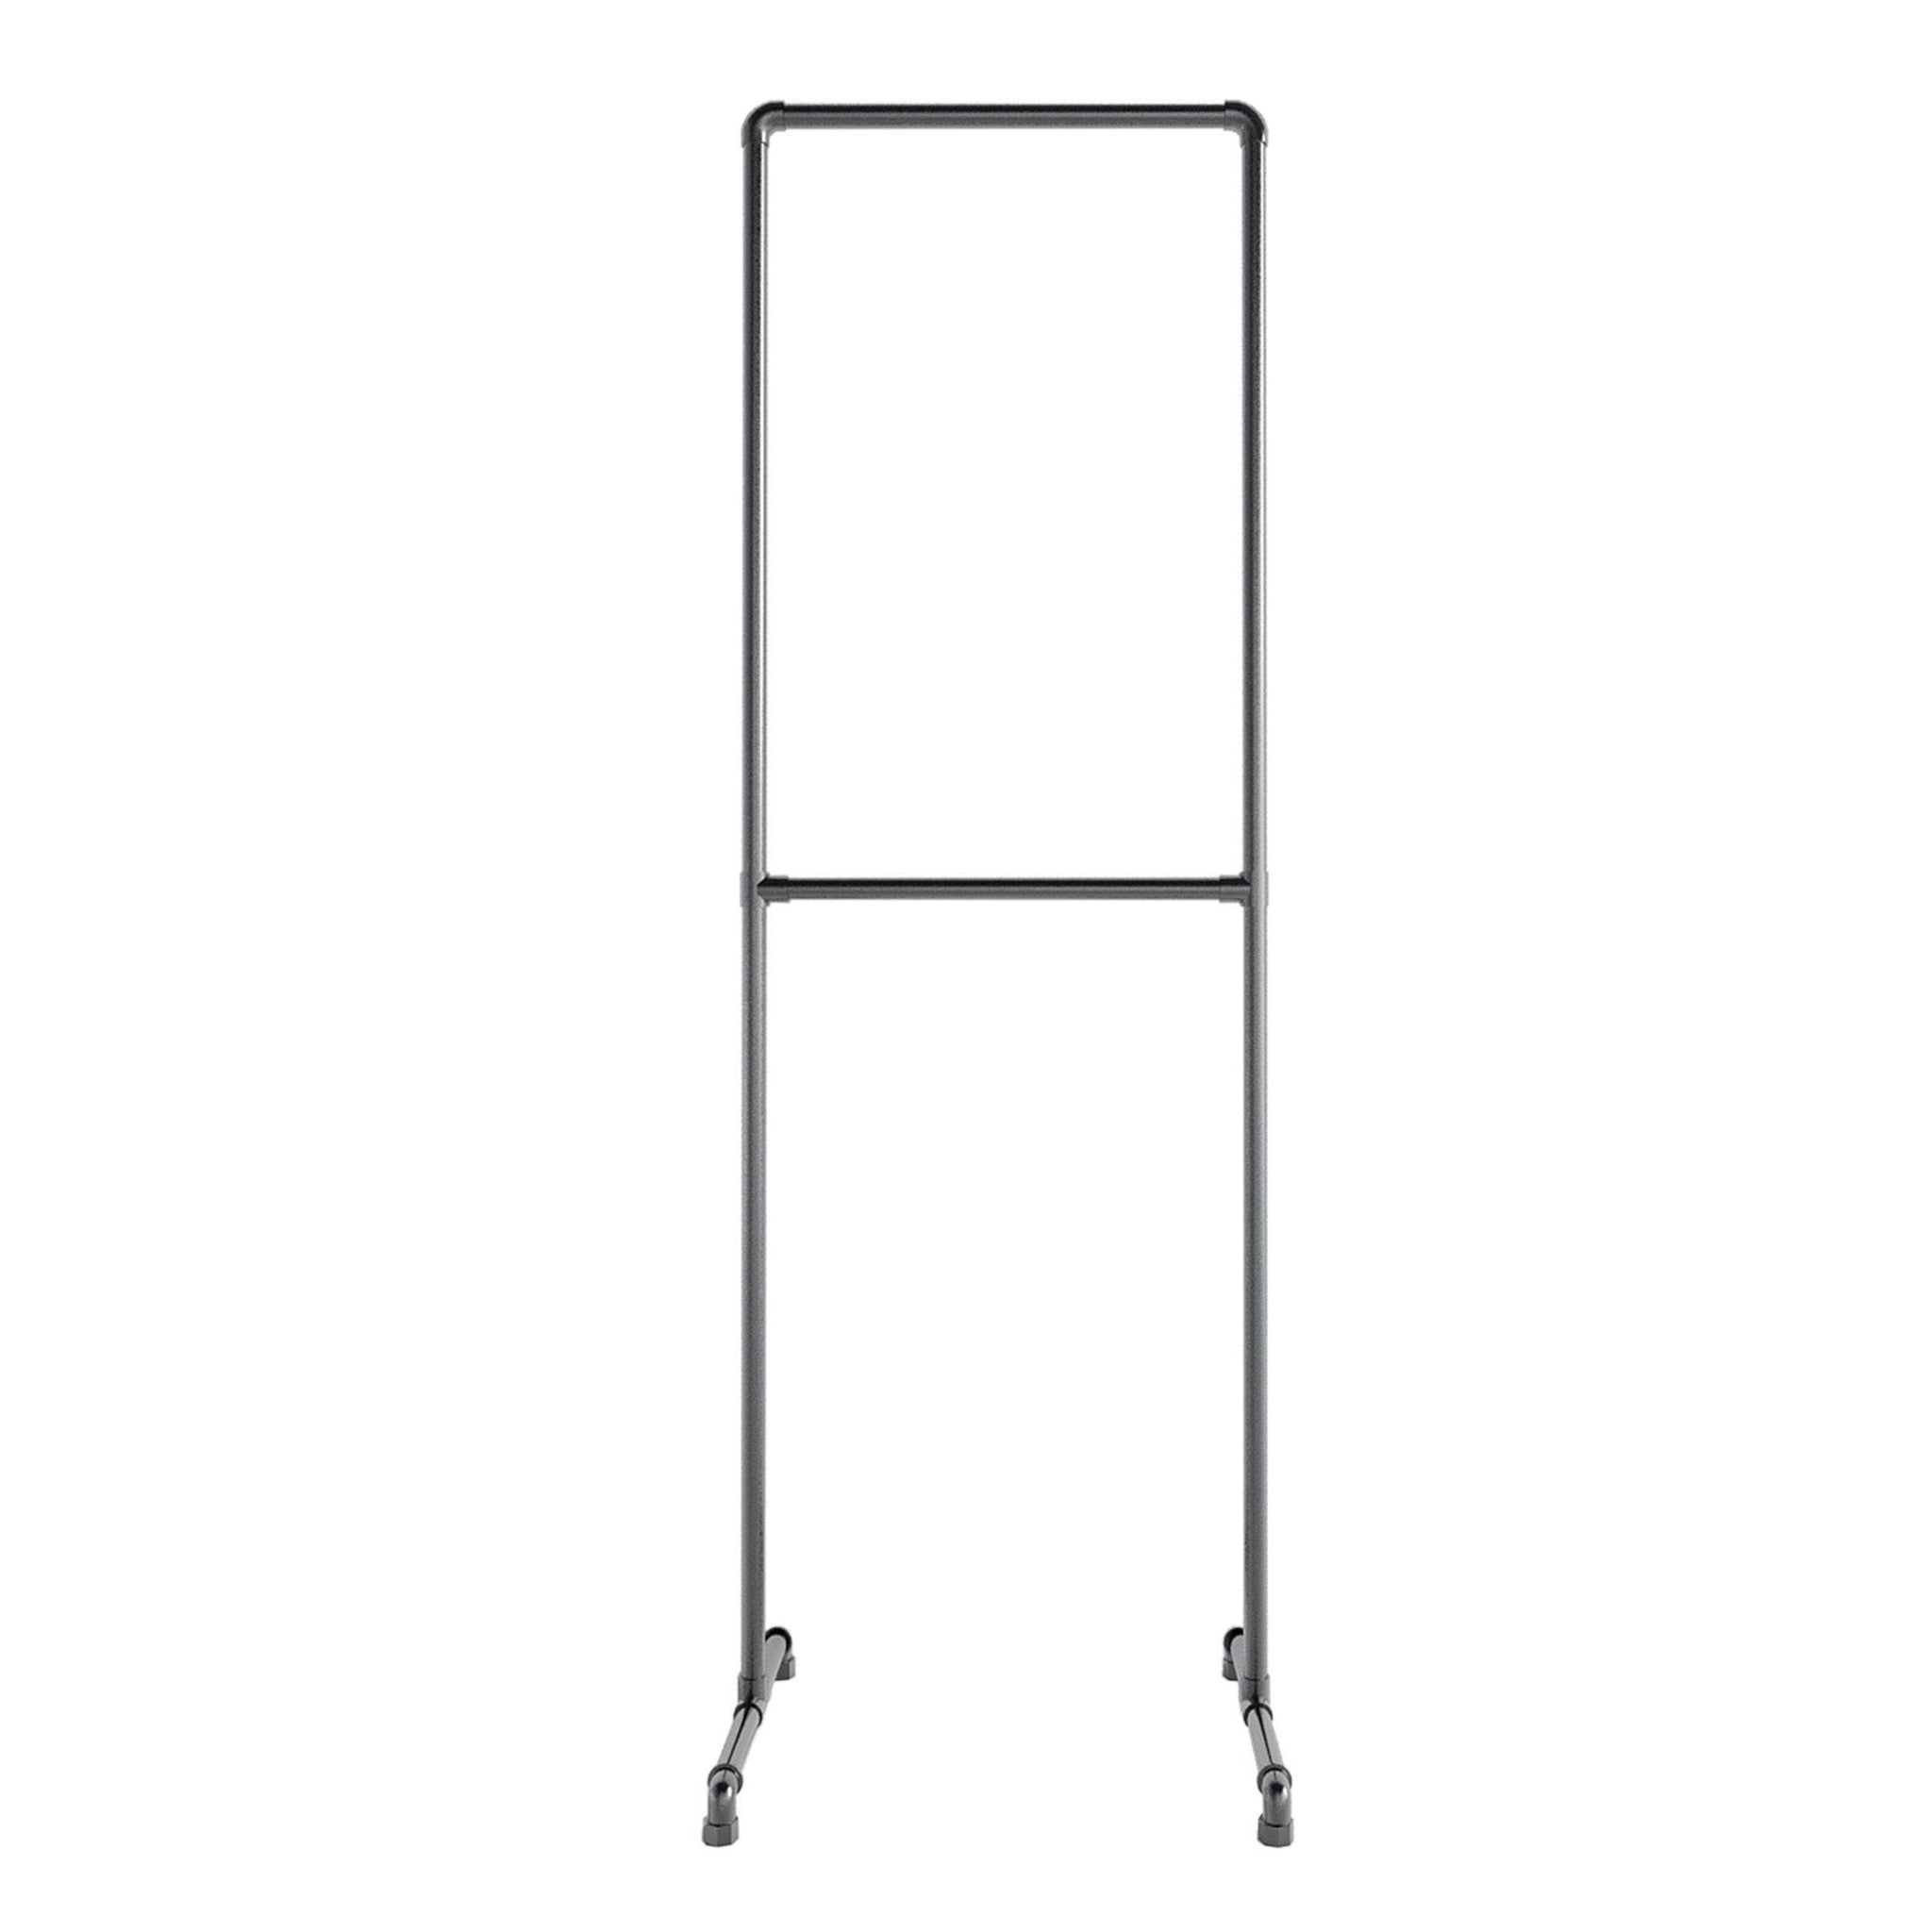 Ziito Clothes Rail Double Tøjstativ (H 200cm)